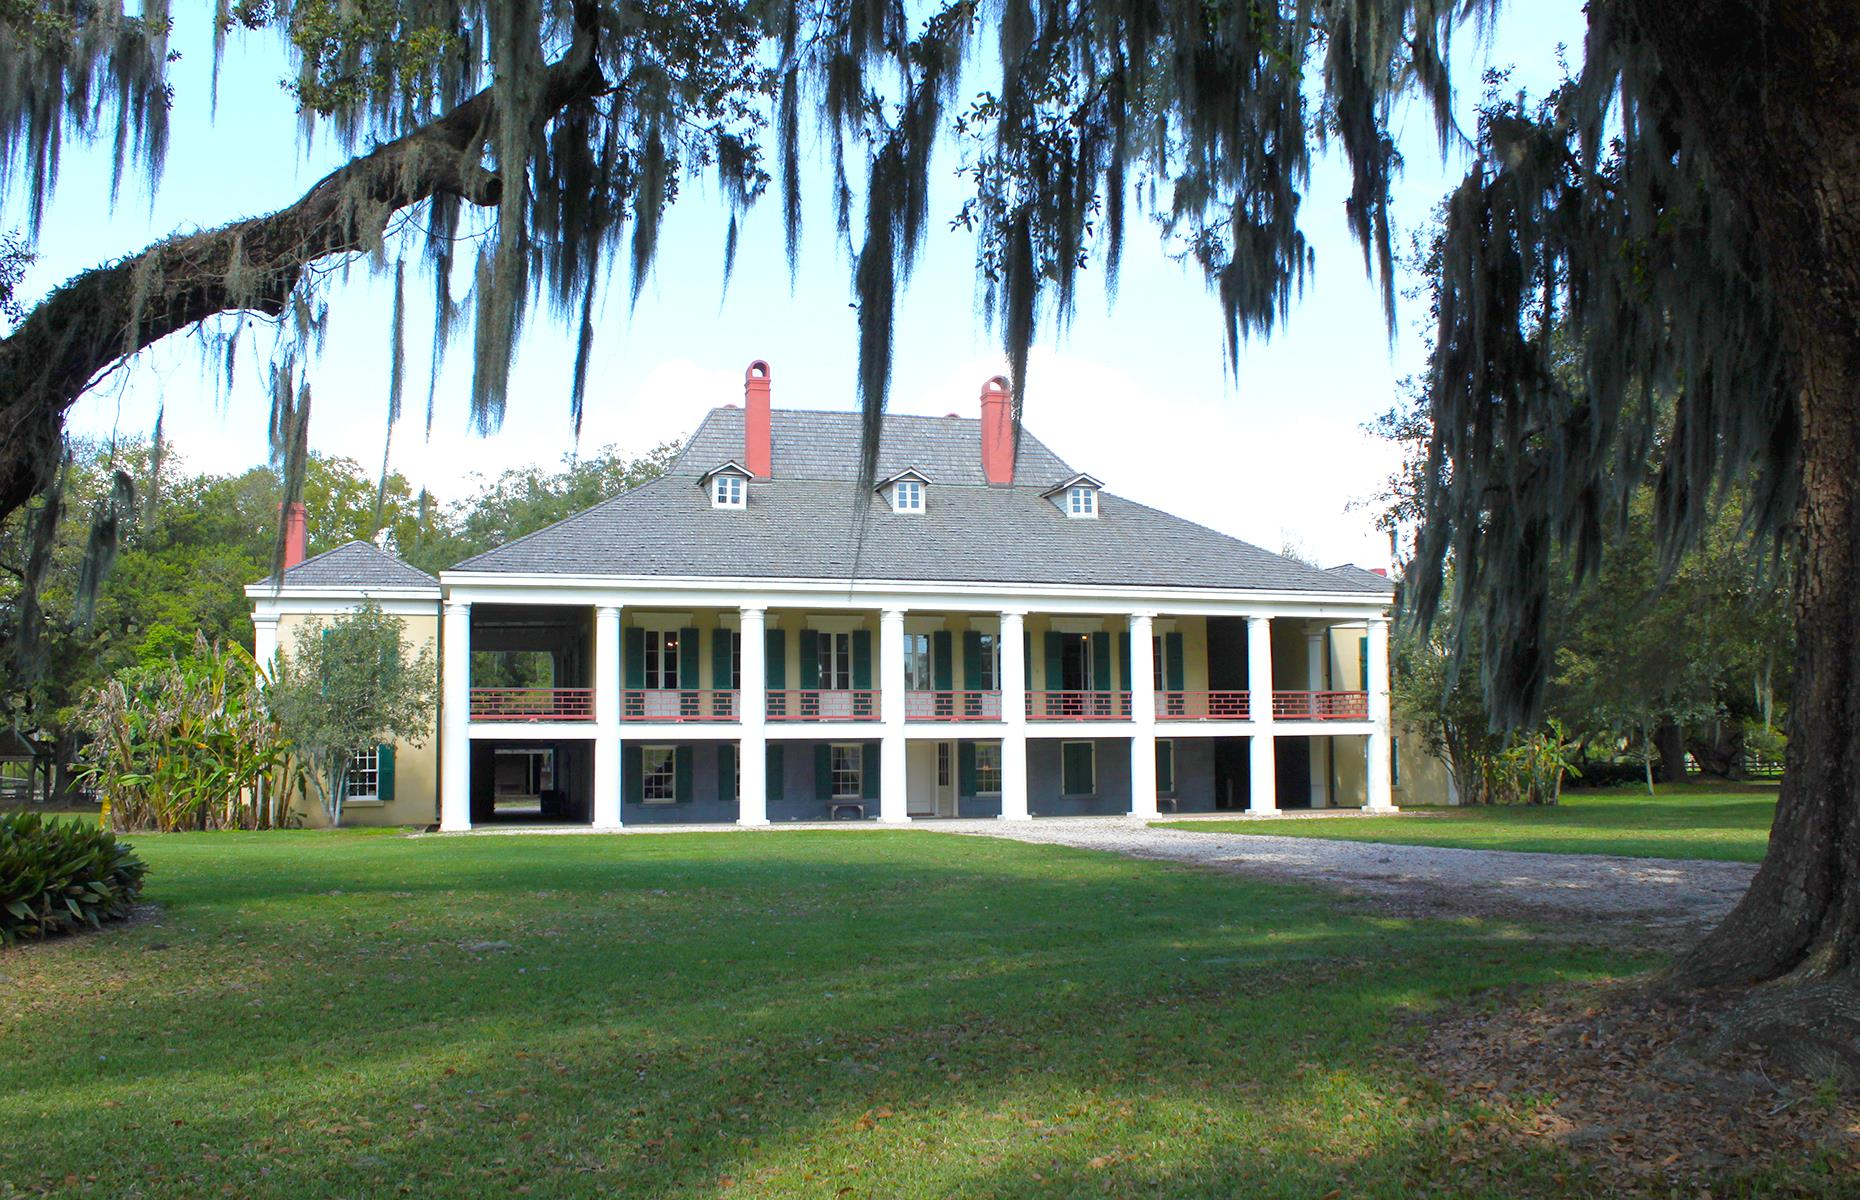 Slide 37 of 101: After the sights and sounds of the Big Easy, popular stops along this route include the Destrehan Plantation (pictured), thought to be the oldest plantation home in the Lower Mississippi Valley. Exhibits at this site include the quarters of the enslaved peoples who lived here, and guided tours typically run most days. Also en routeis the poignant River Road African American Museum (you'll need to book a tour online or via email), before the road eventually spills into thecity of Baton Rouge.